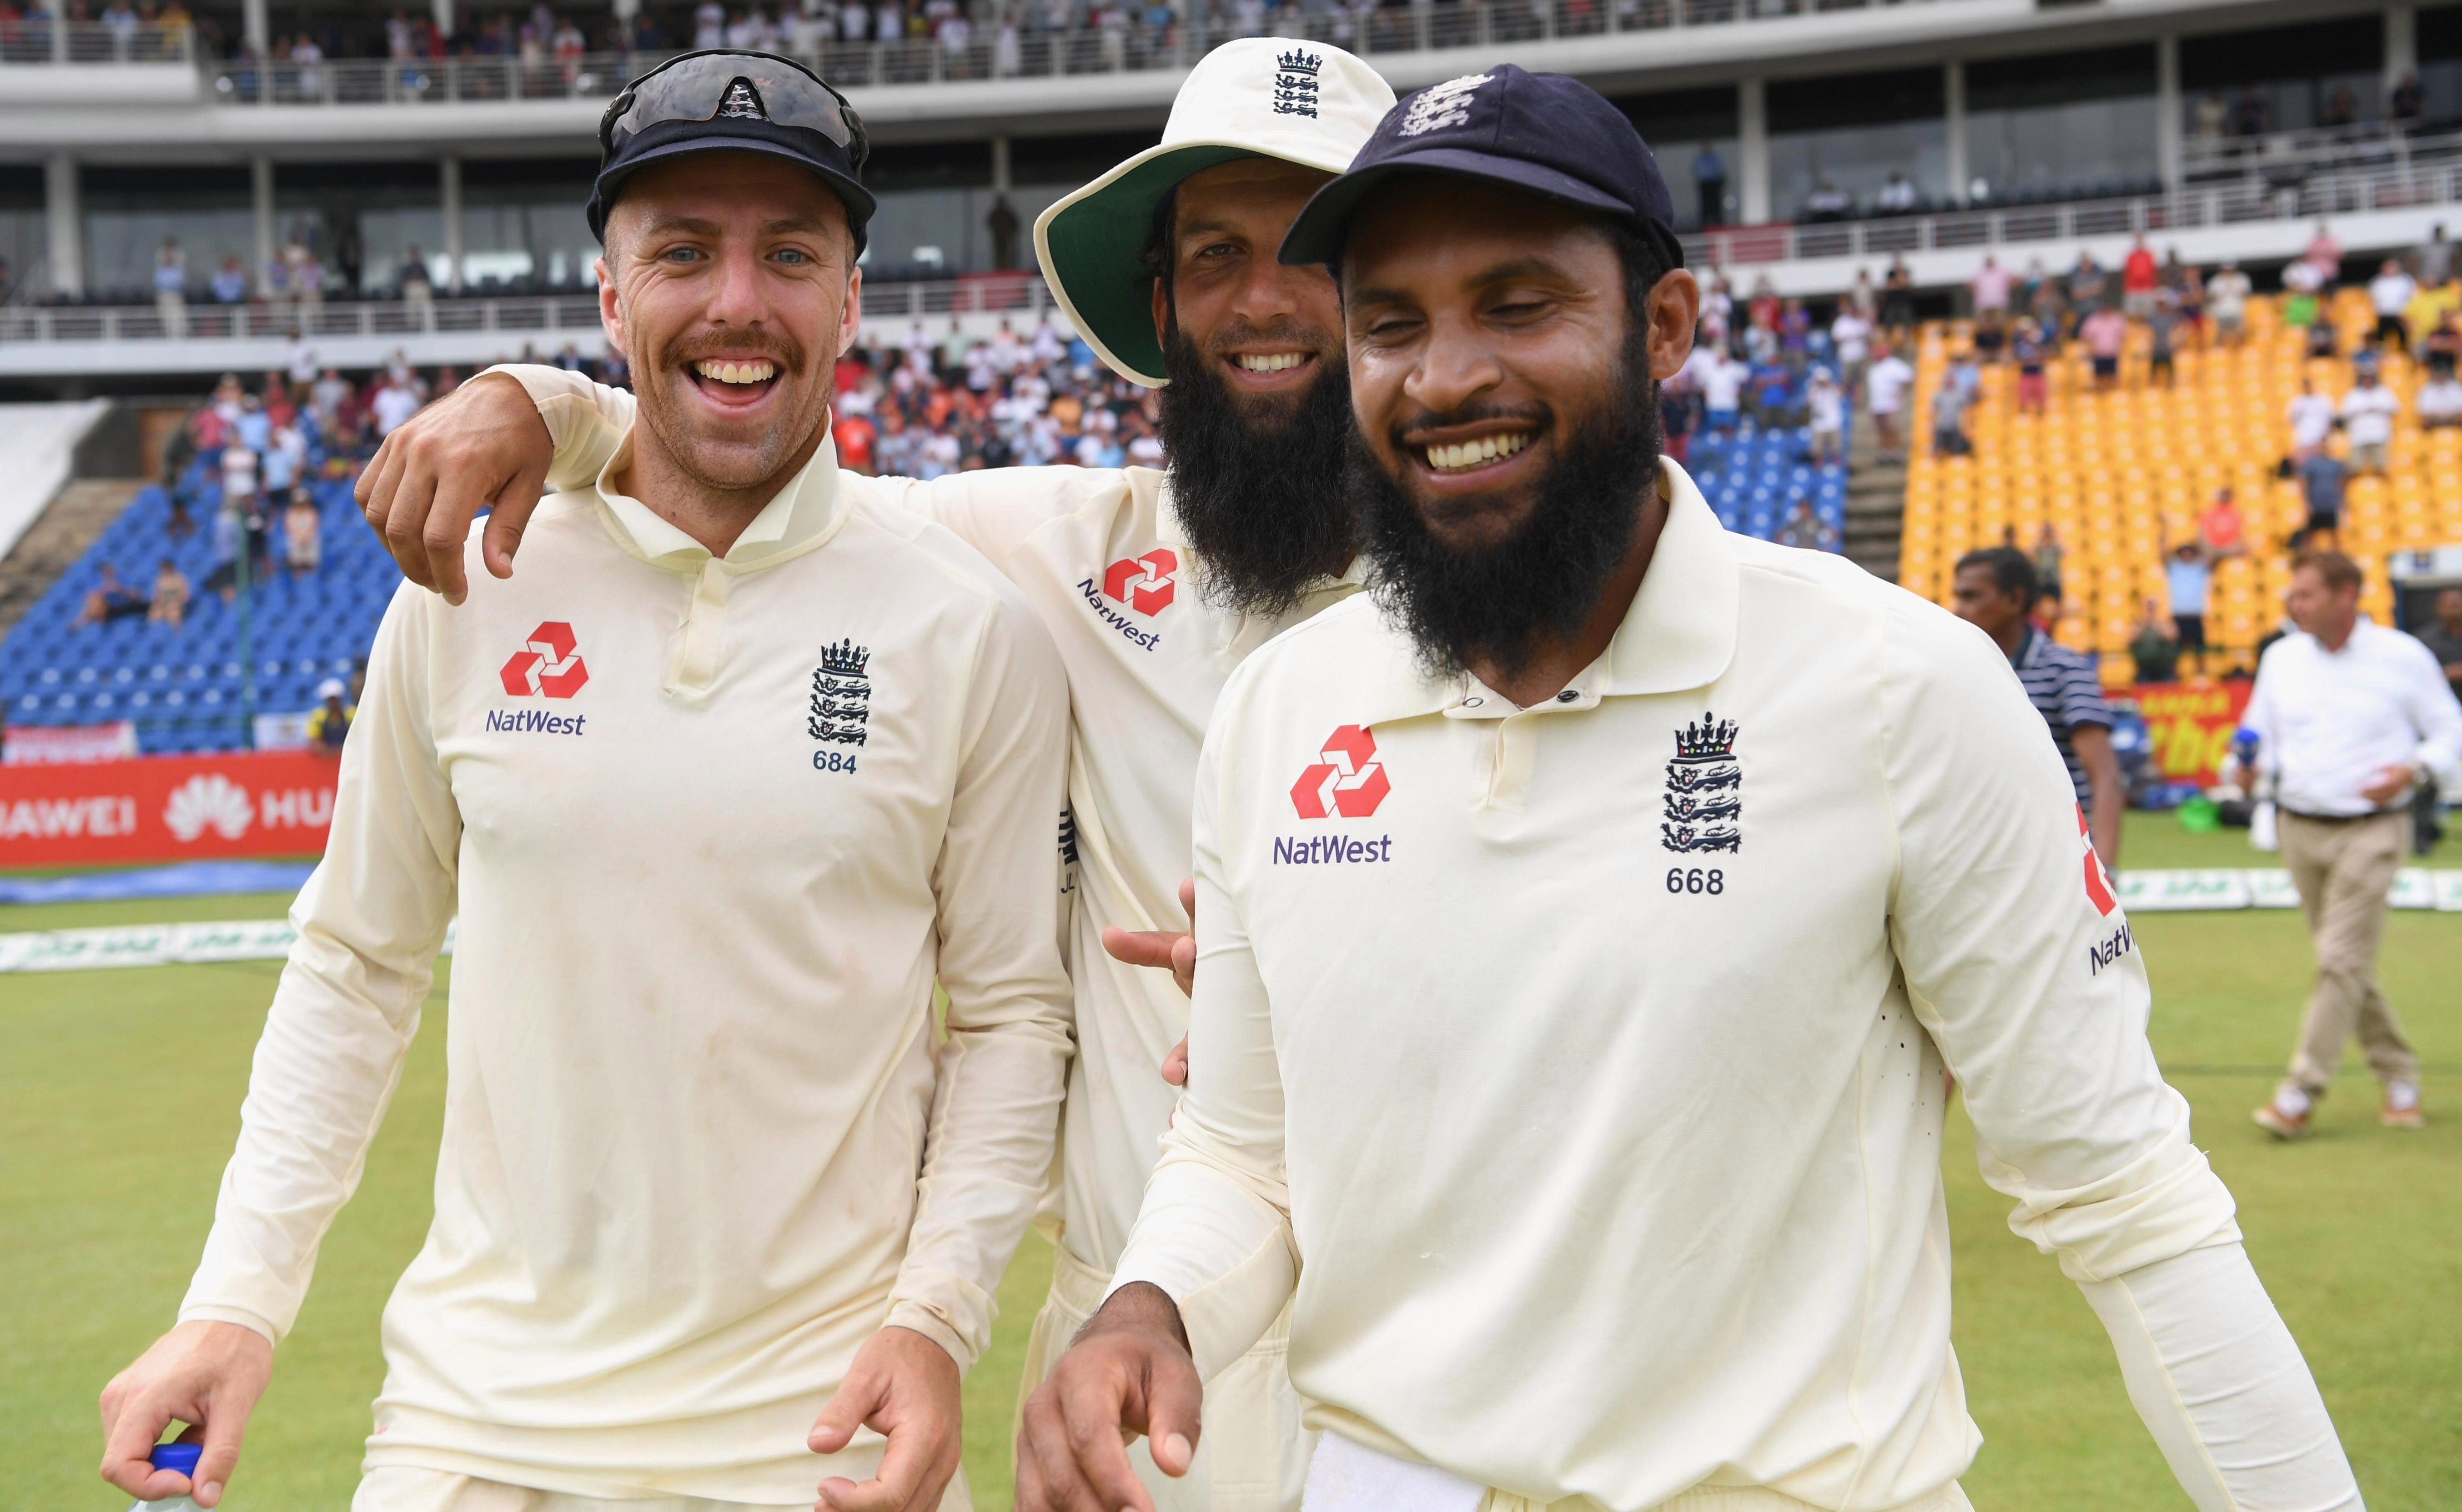 England won the series against Sri Lanka with spin bowlers taking all 38 wickets